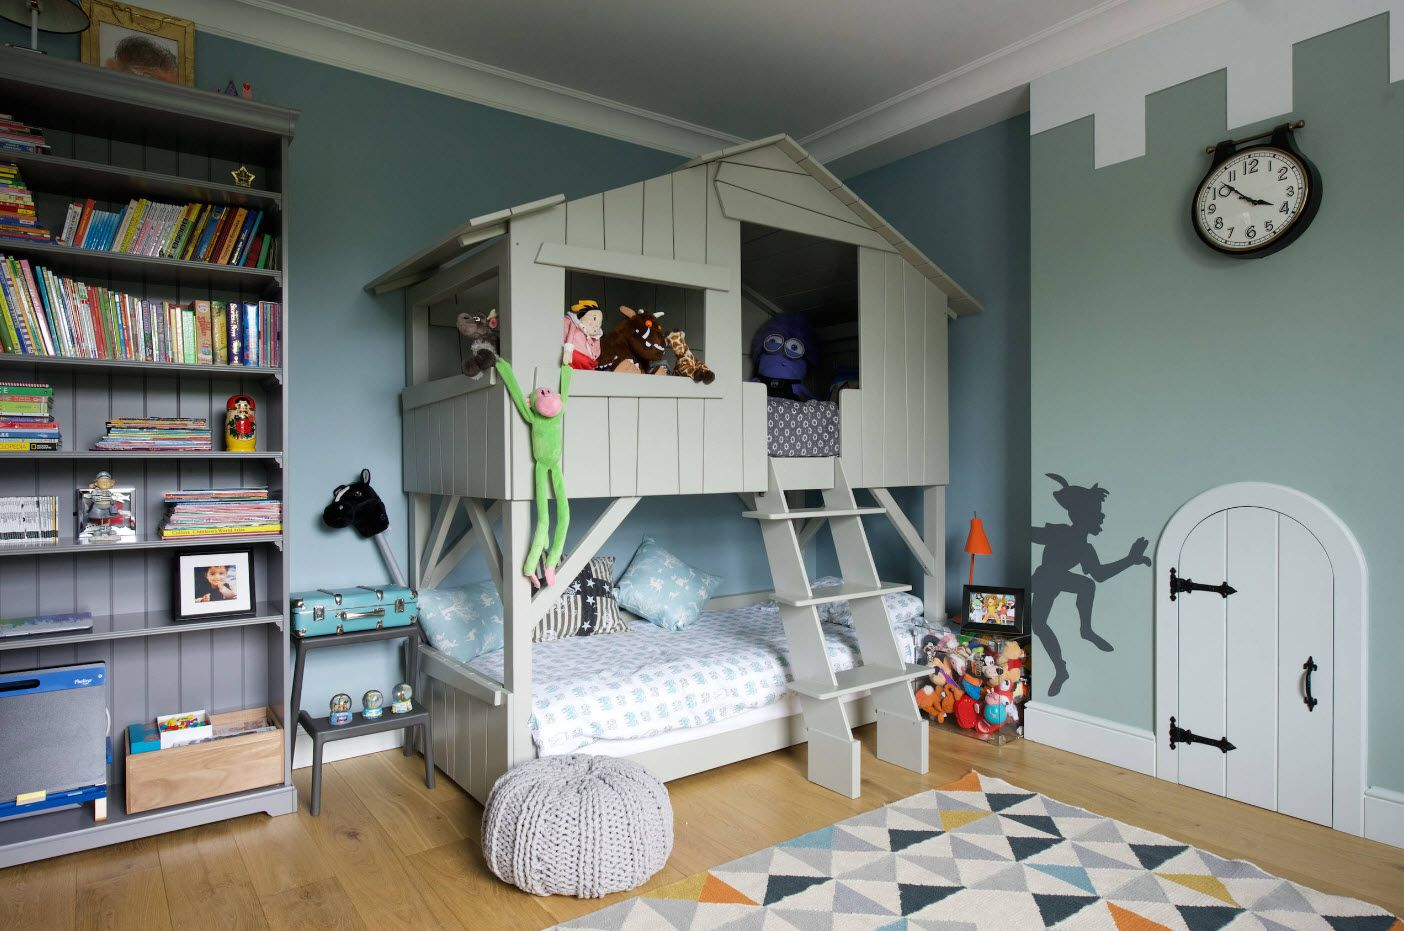 Children's room with spectacular kids' house as a bunk bed